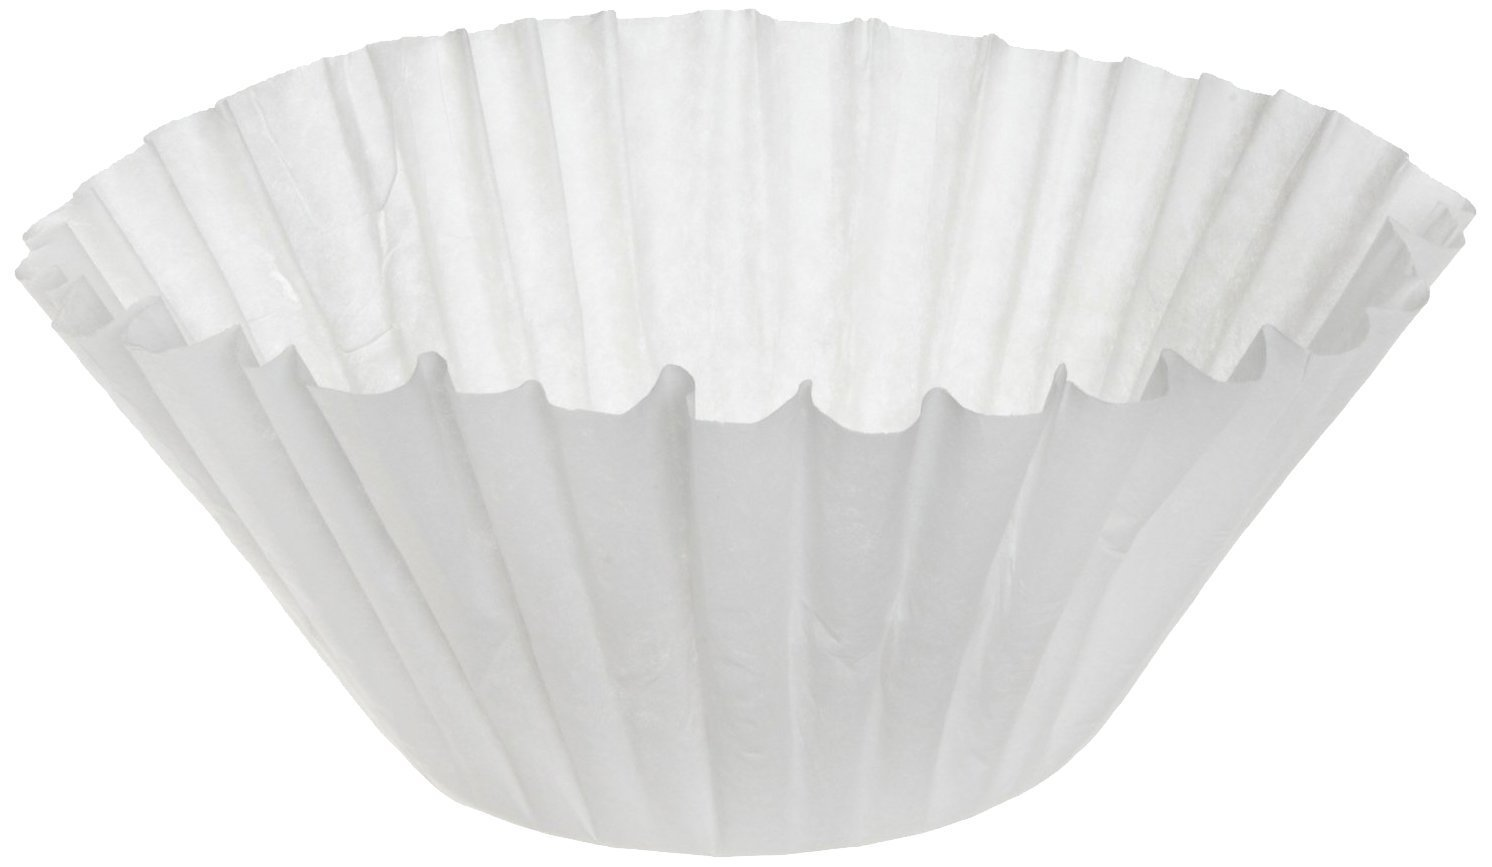 Bunn 1000 Paper Regular Coffee Filter for 12-Cup Commercial Brewers (2 Cases of 1,000)